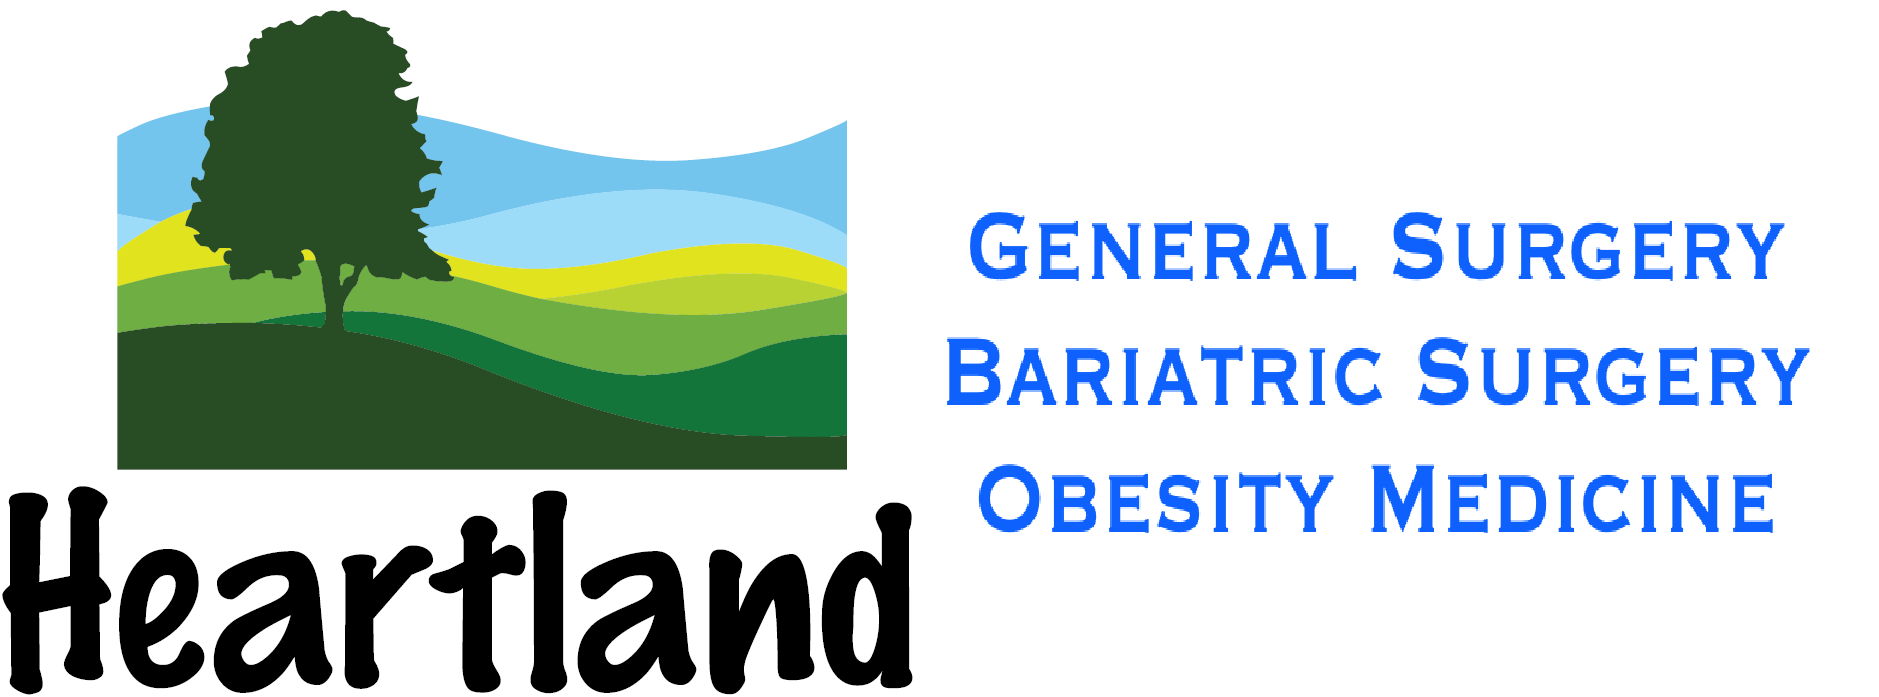 Heartland Surgical General Bariatric Surgery